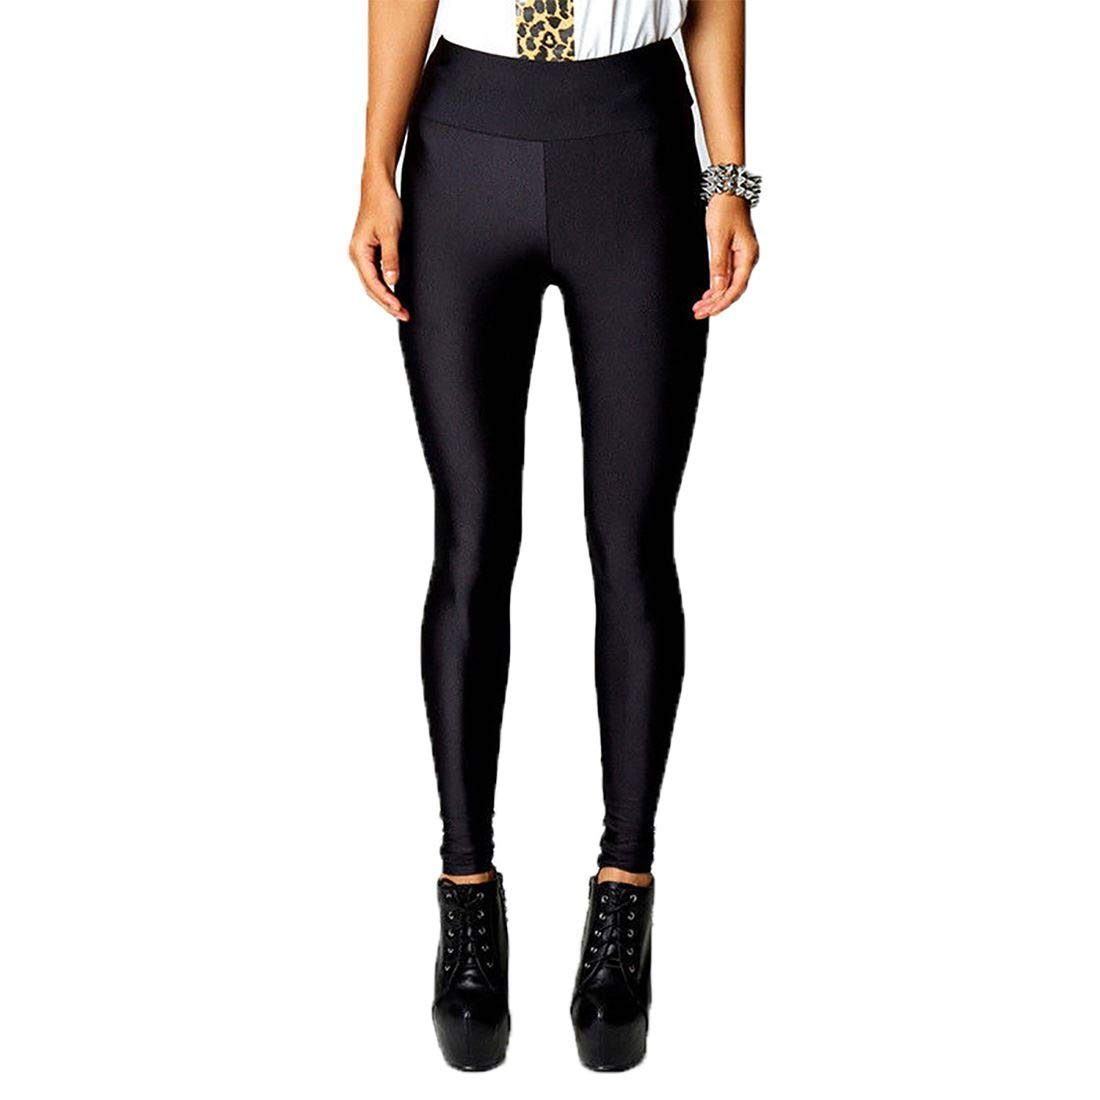 809d57fbdc22c MA ONLINE Womens Full Length Neon Gym Wear Pants Ladies High Waist Fitness  Leggings Sports Pants at Amazon Women's Clothing store: